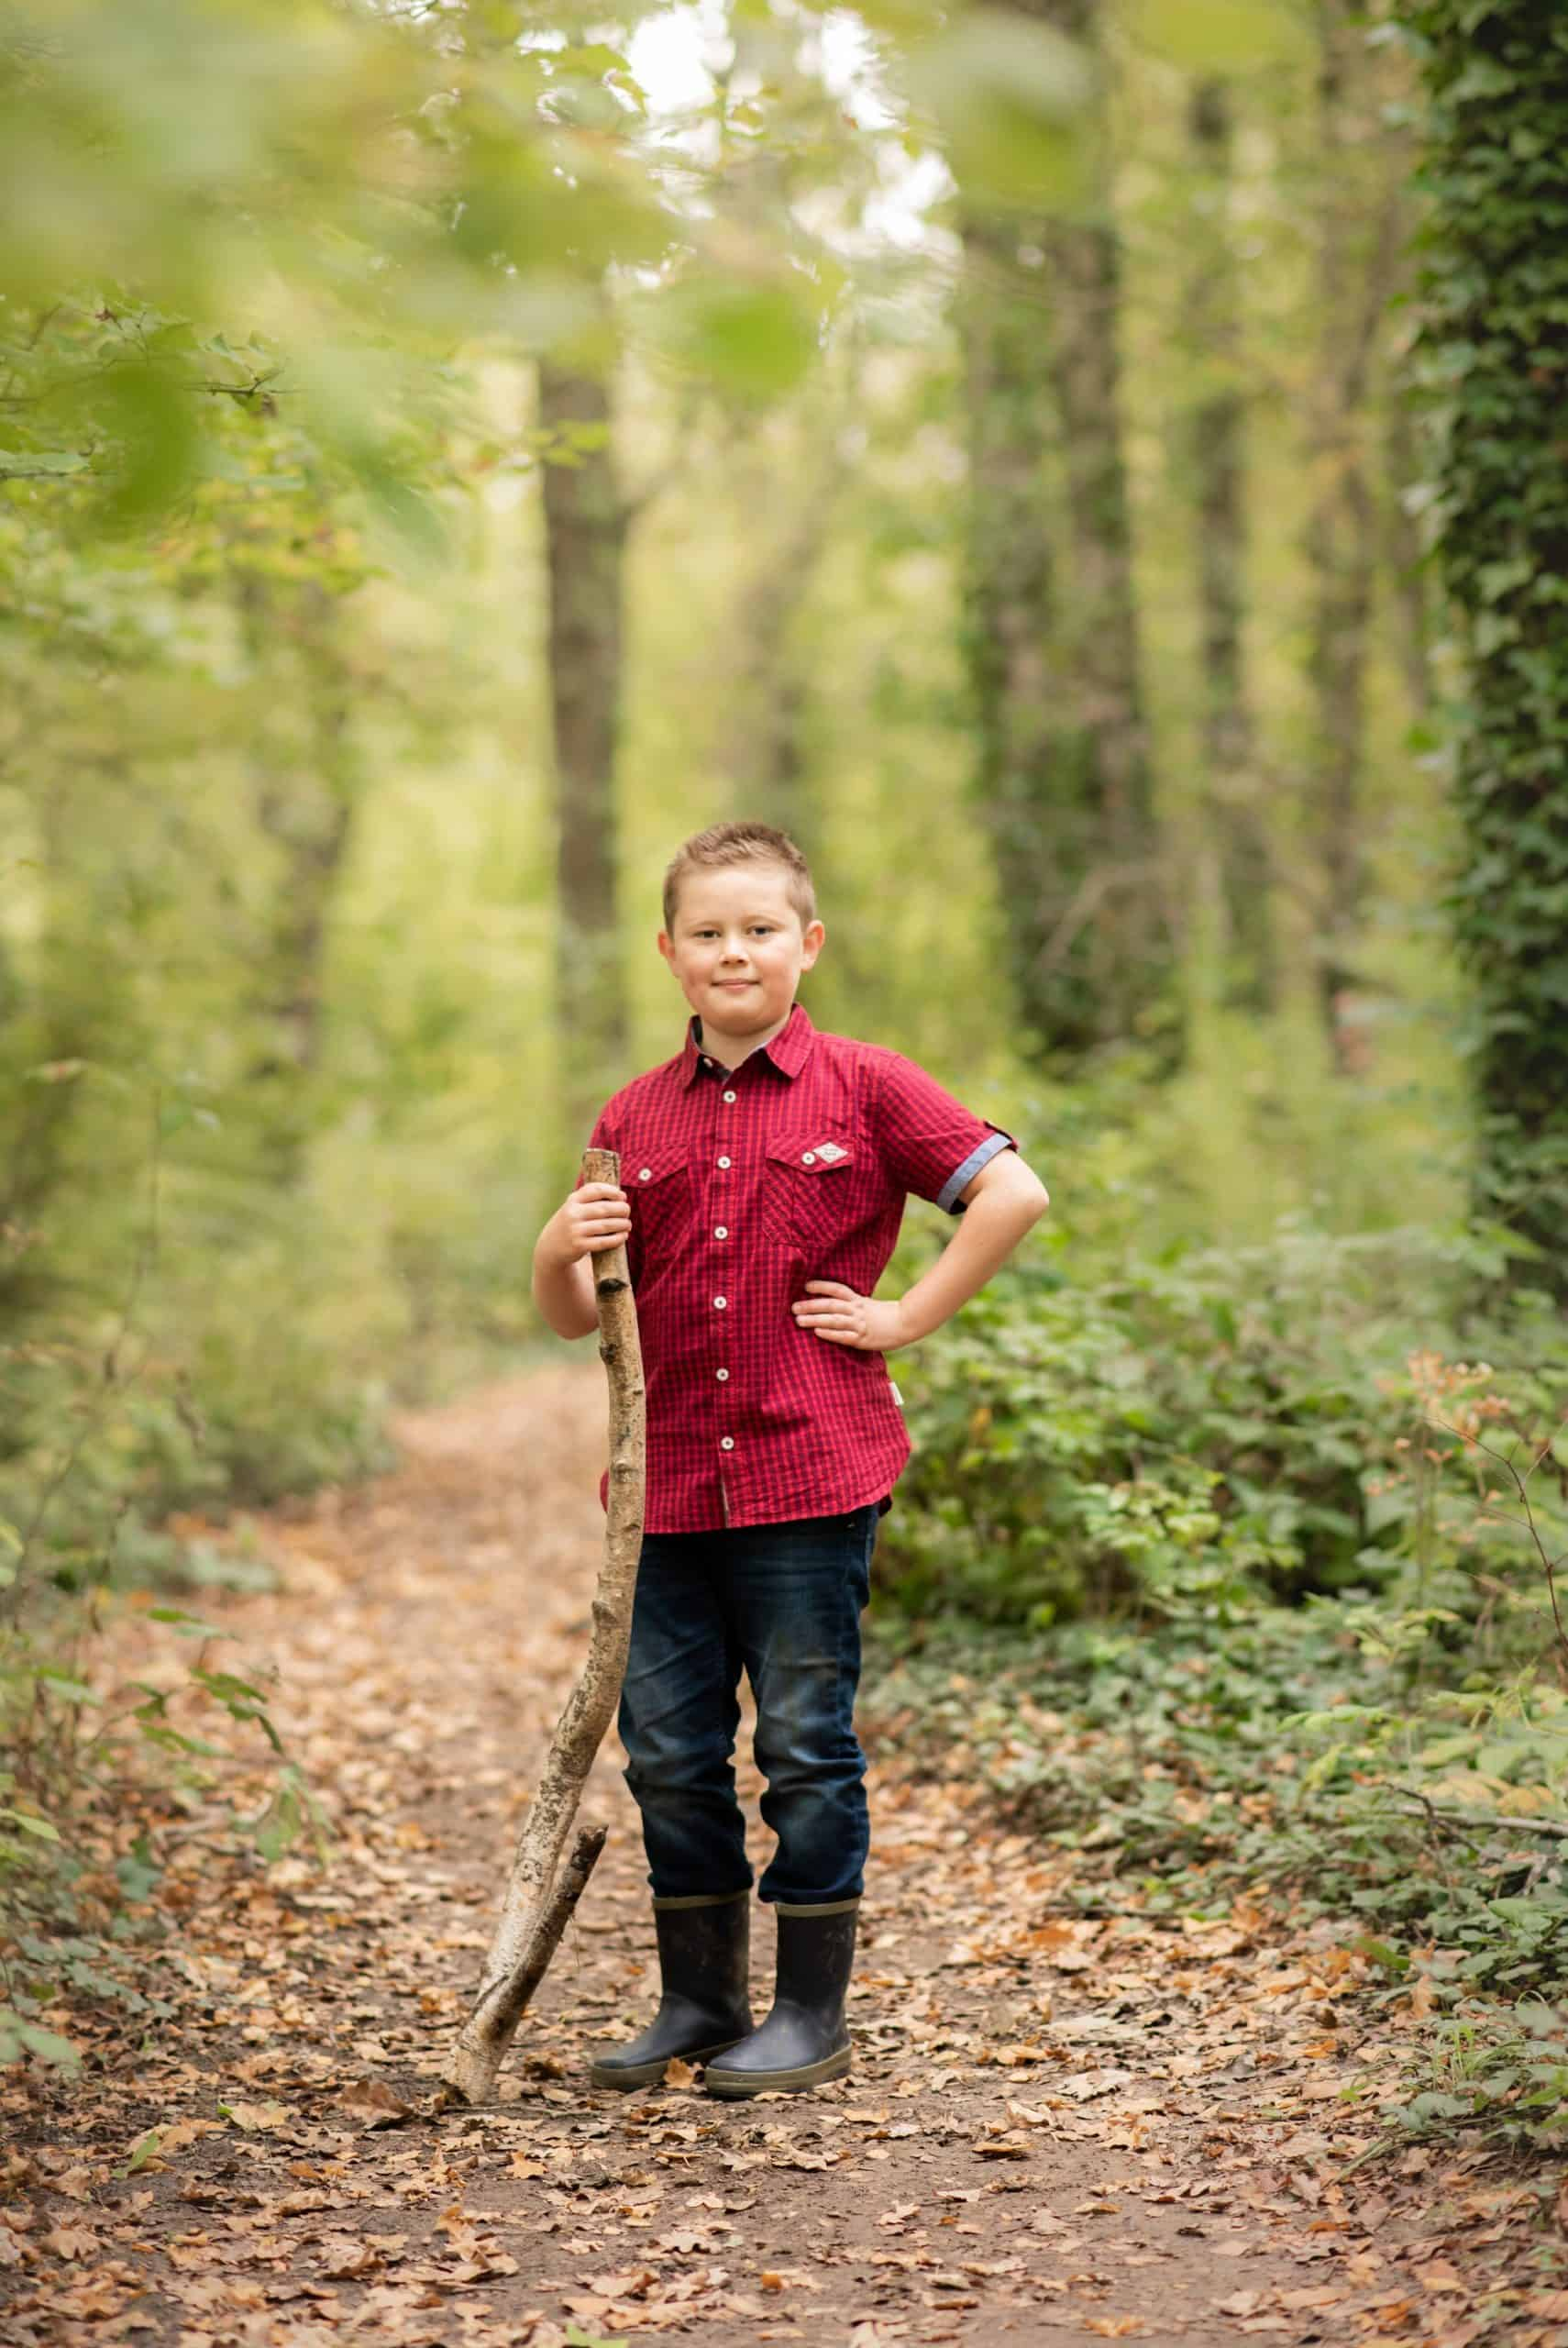 Young boy stoff in the woods posing for a photo oh him for his mum and dad